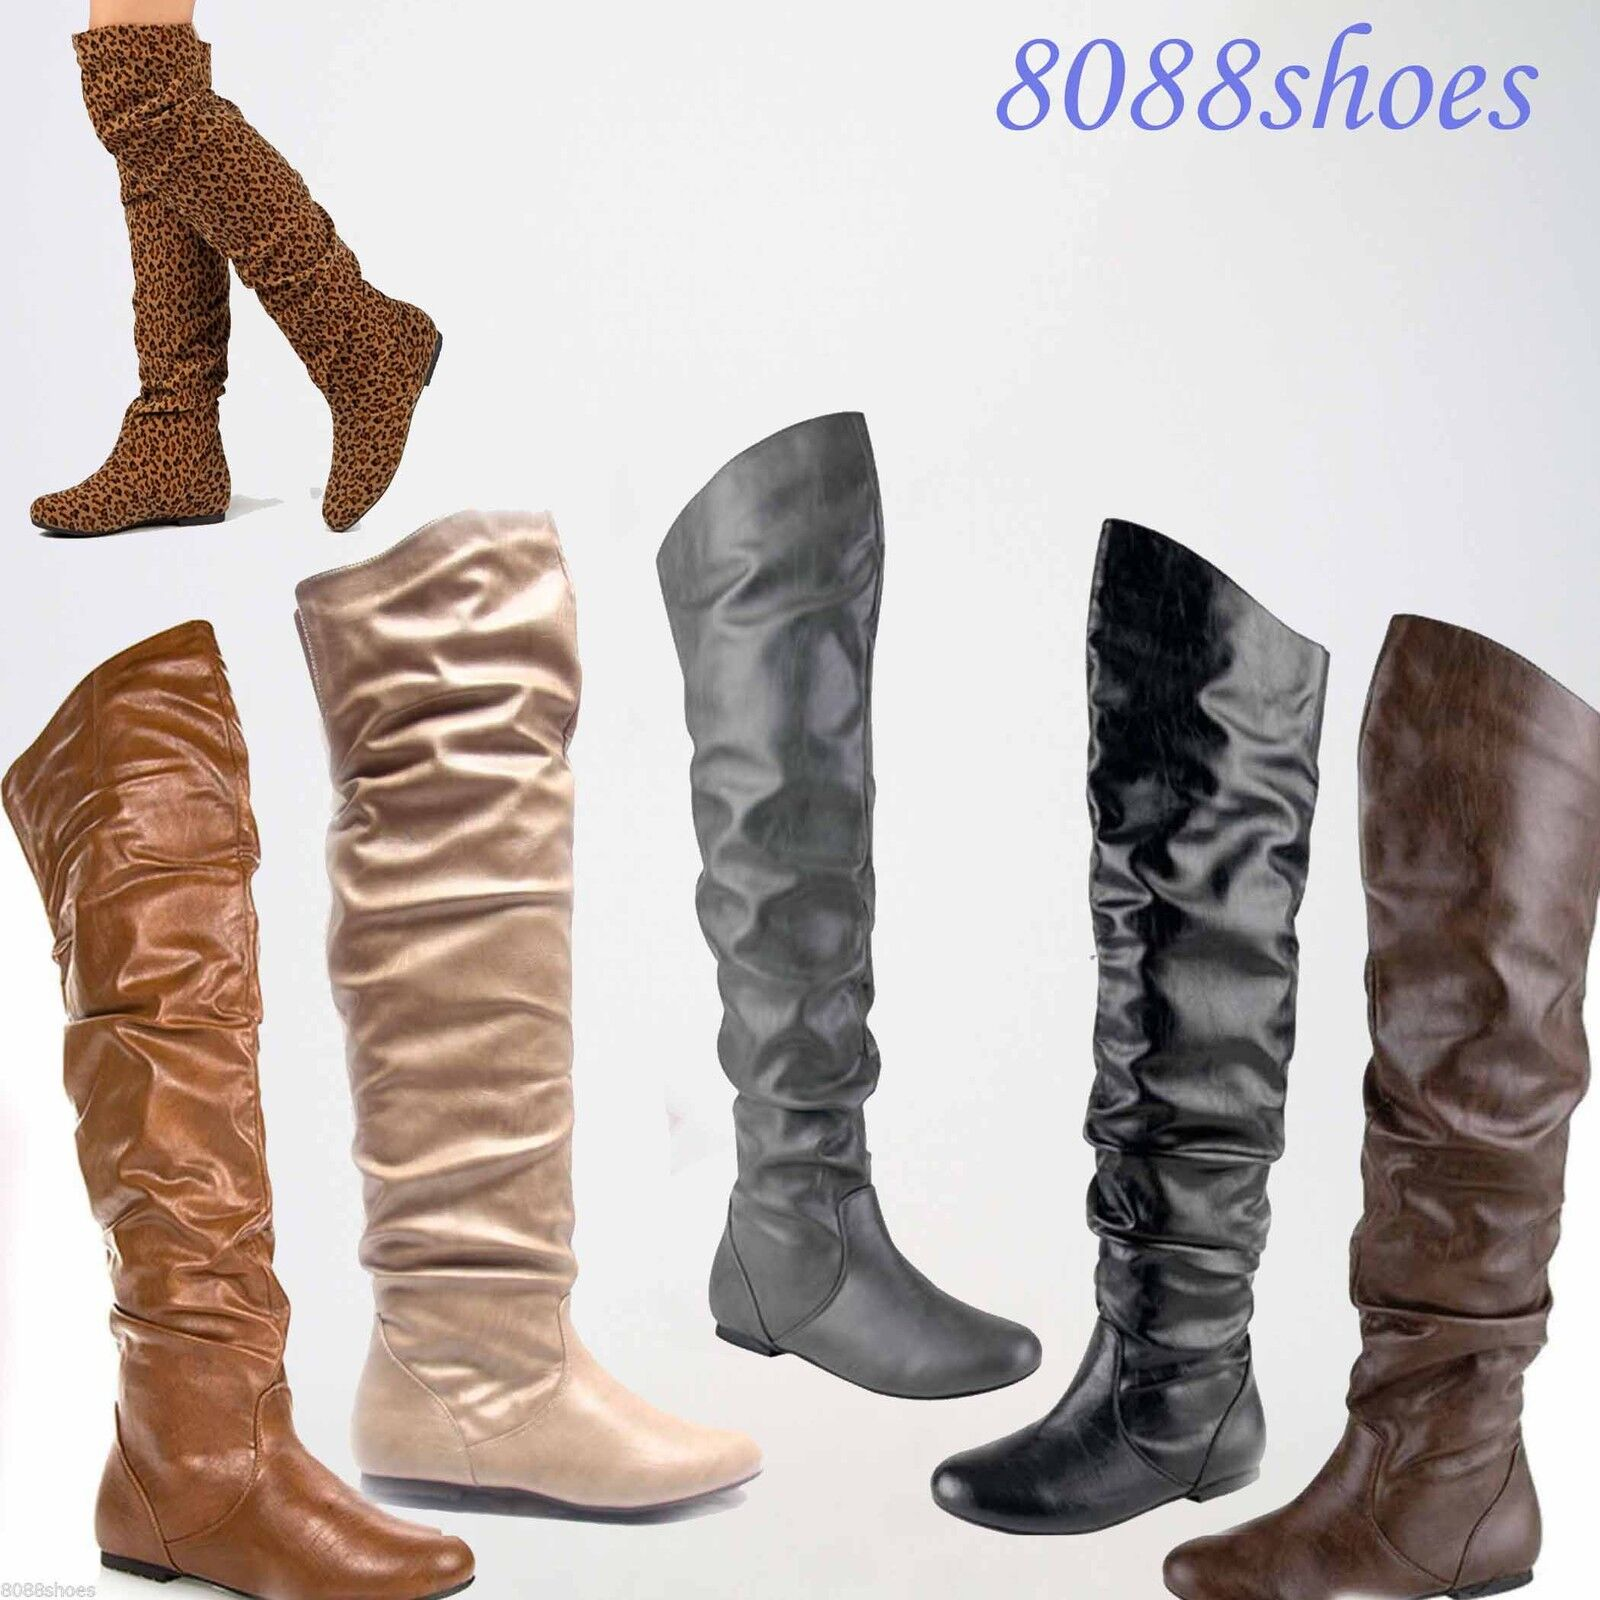 Women's Comfort  Round Toe Flat Low Heel Slouchy Thigh High Boot Shoes 5 - 11